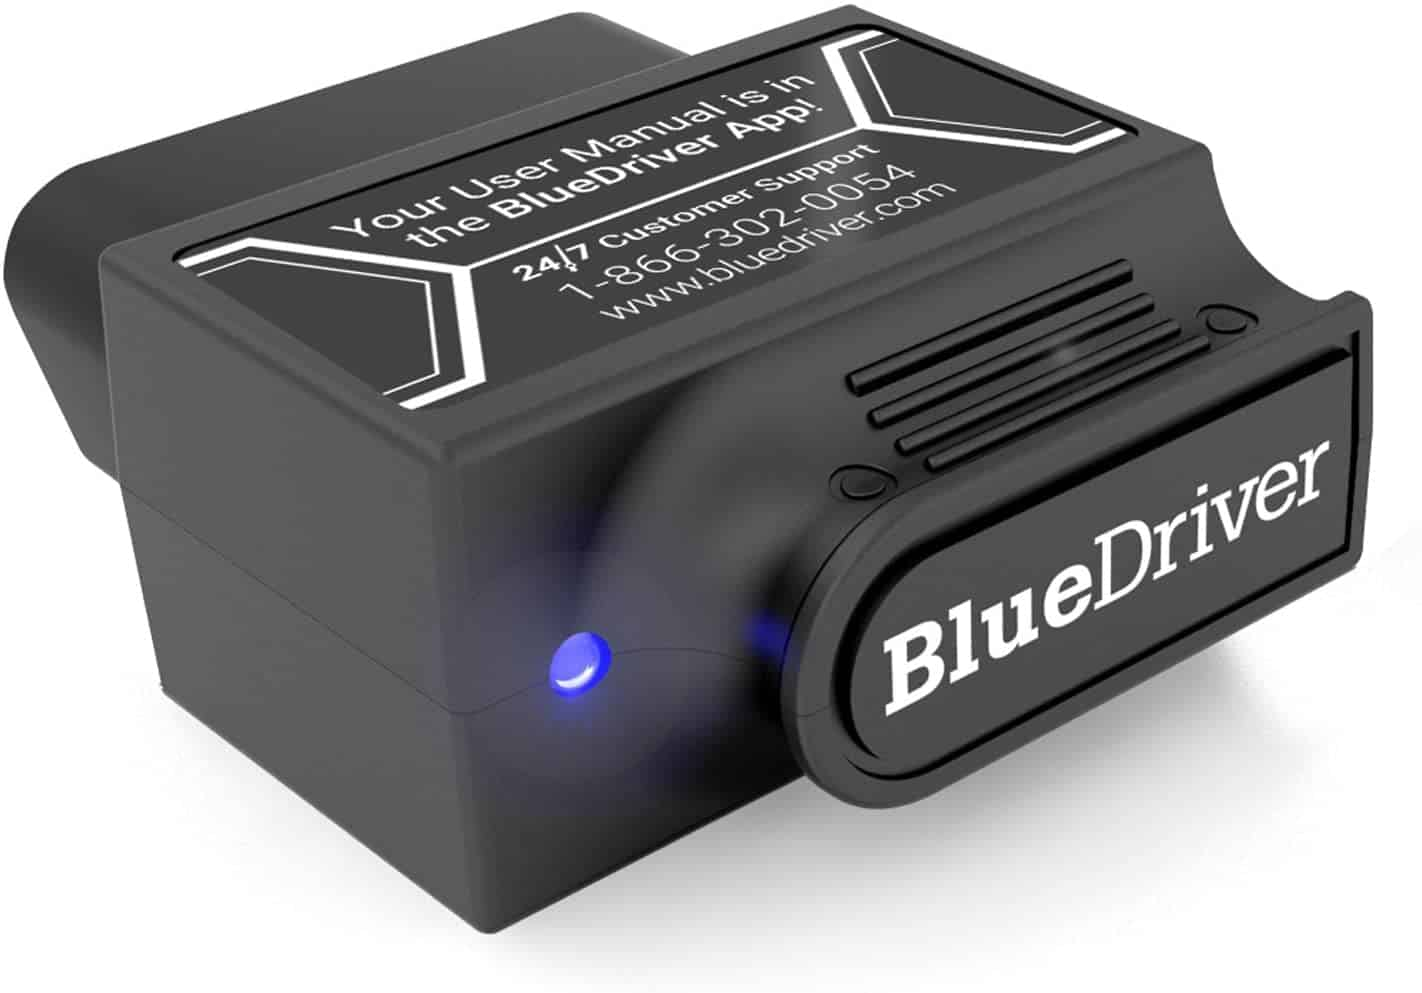 BlueDriver OBDII Scan Tool